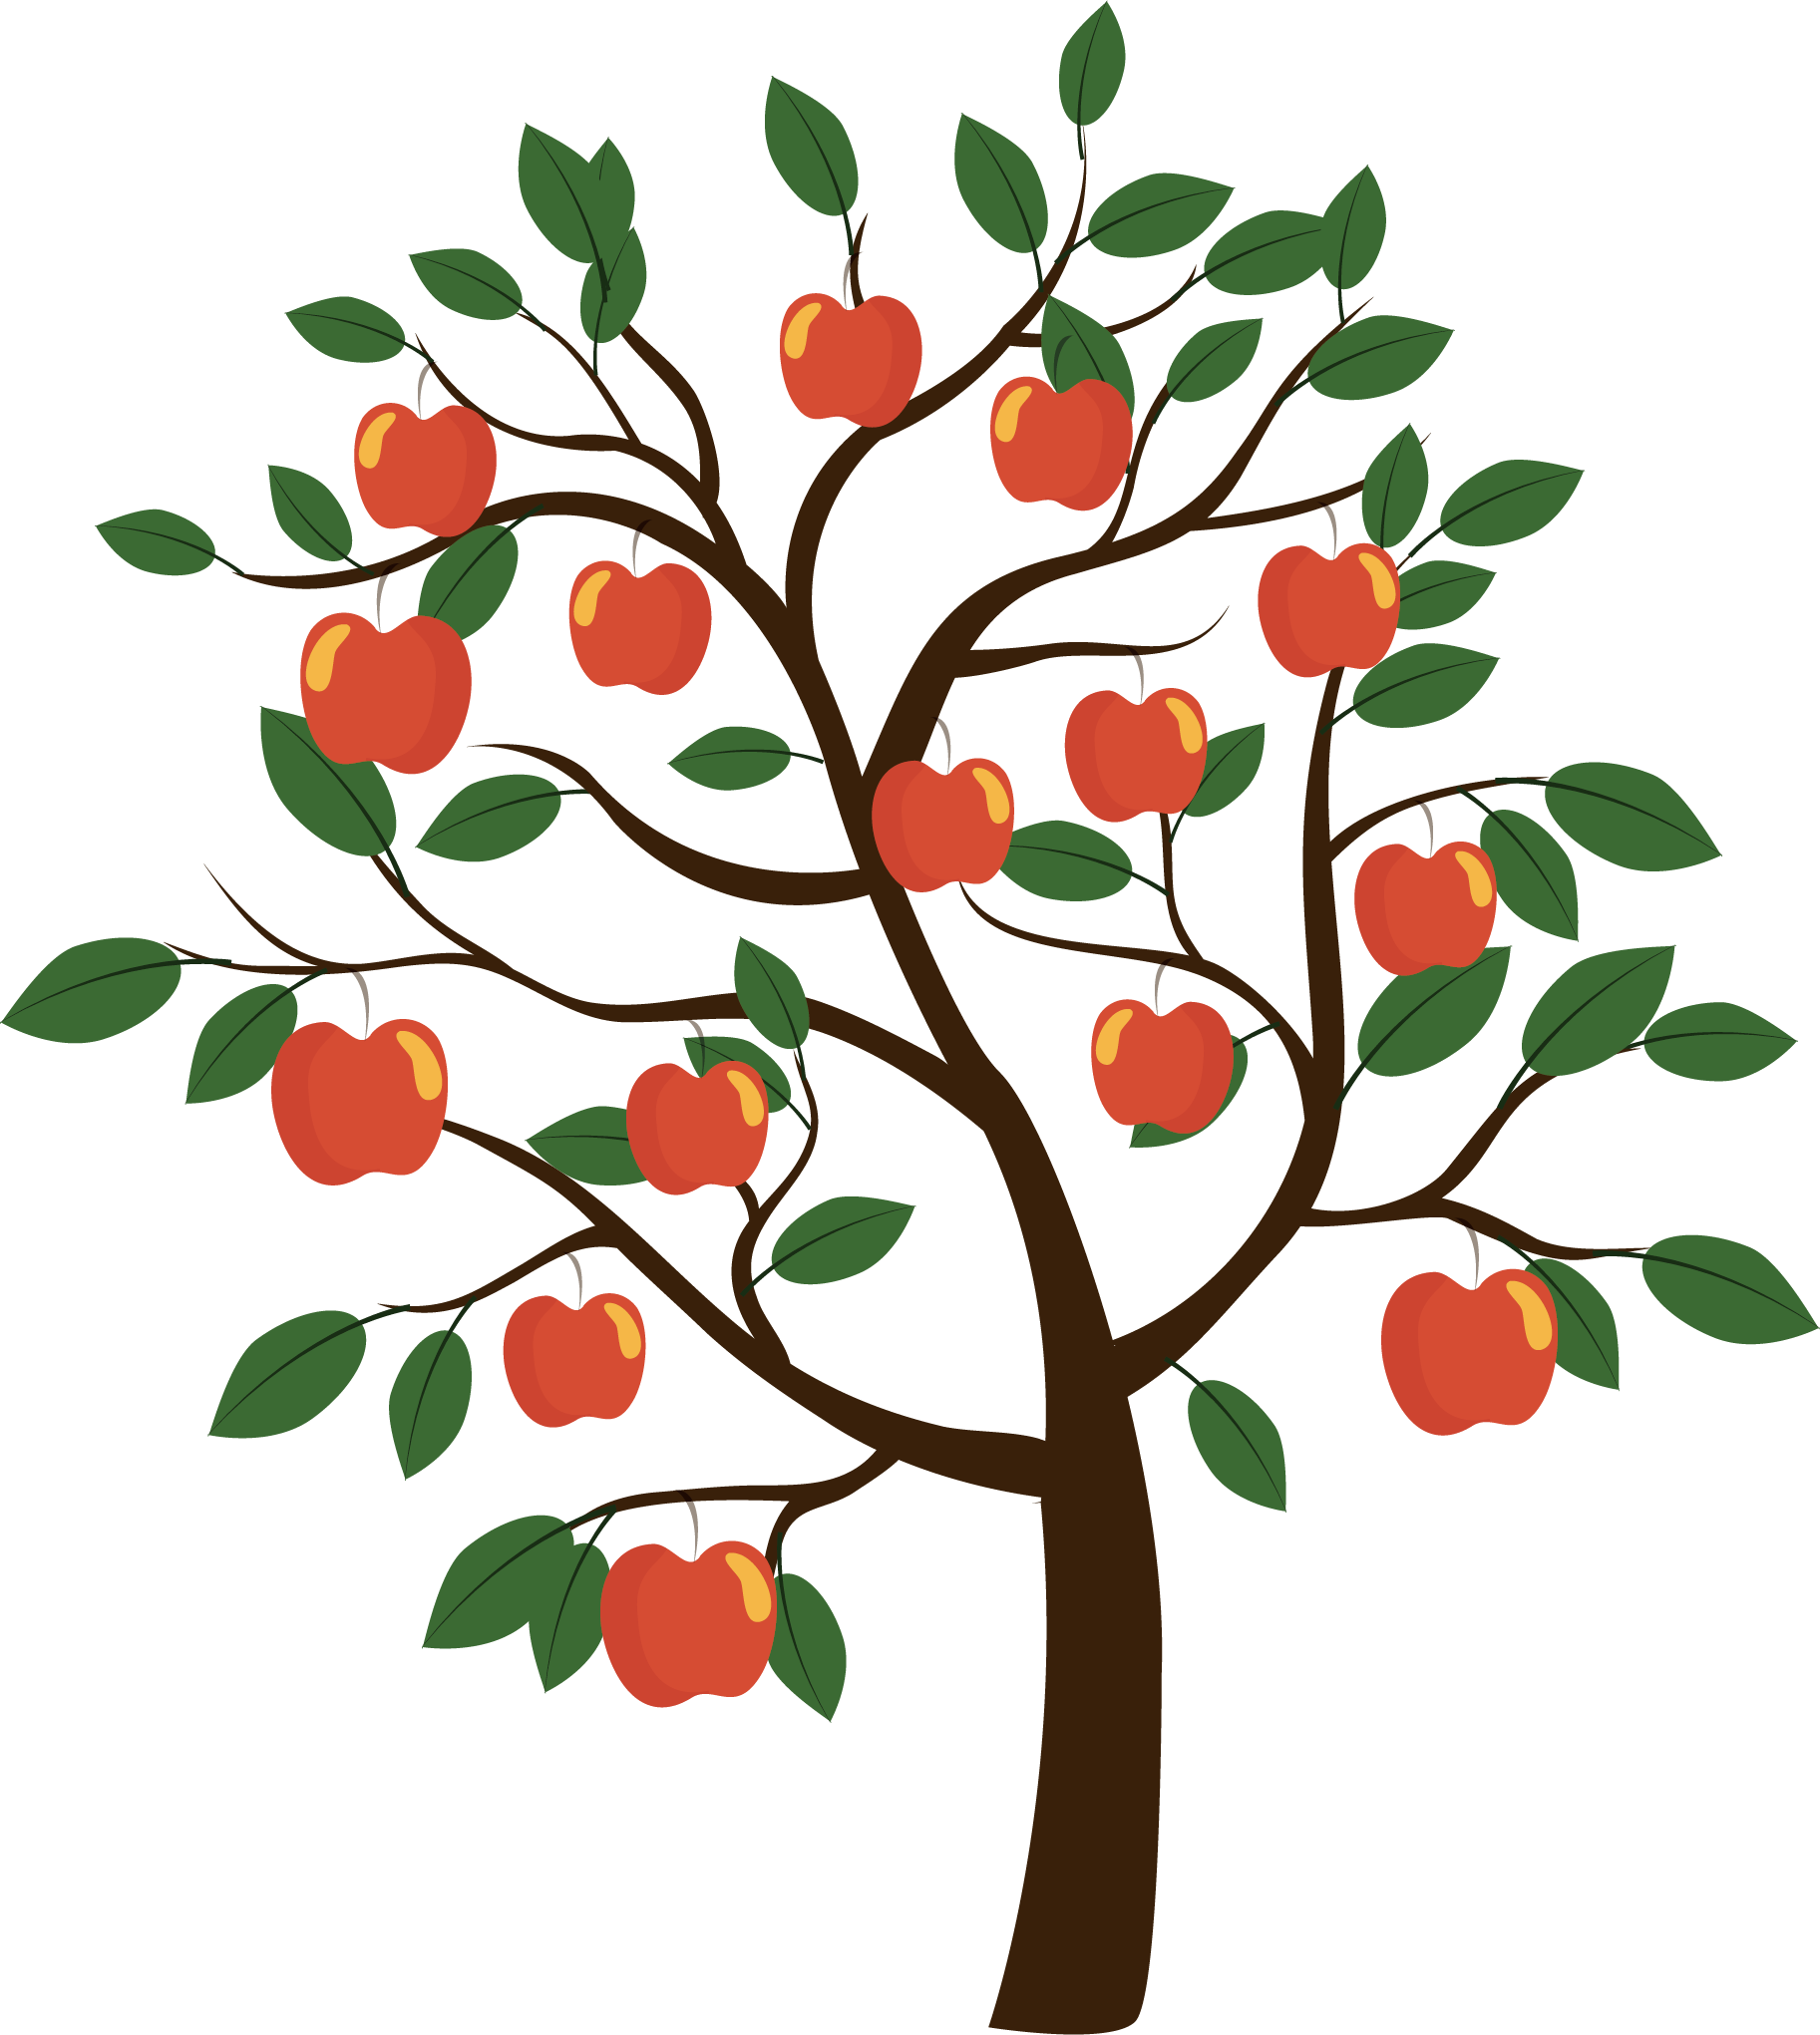 Vector Euclidean Fruit Tree Apple Free HQ Image PNG Image